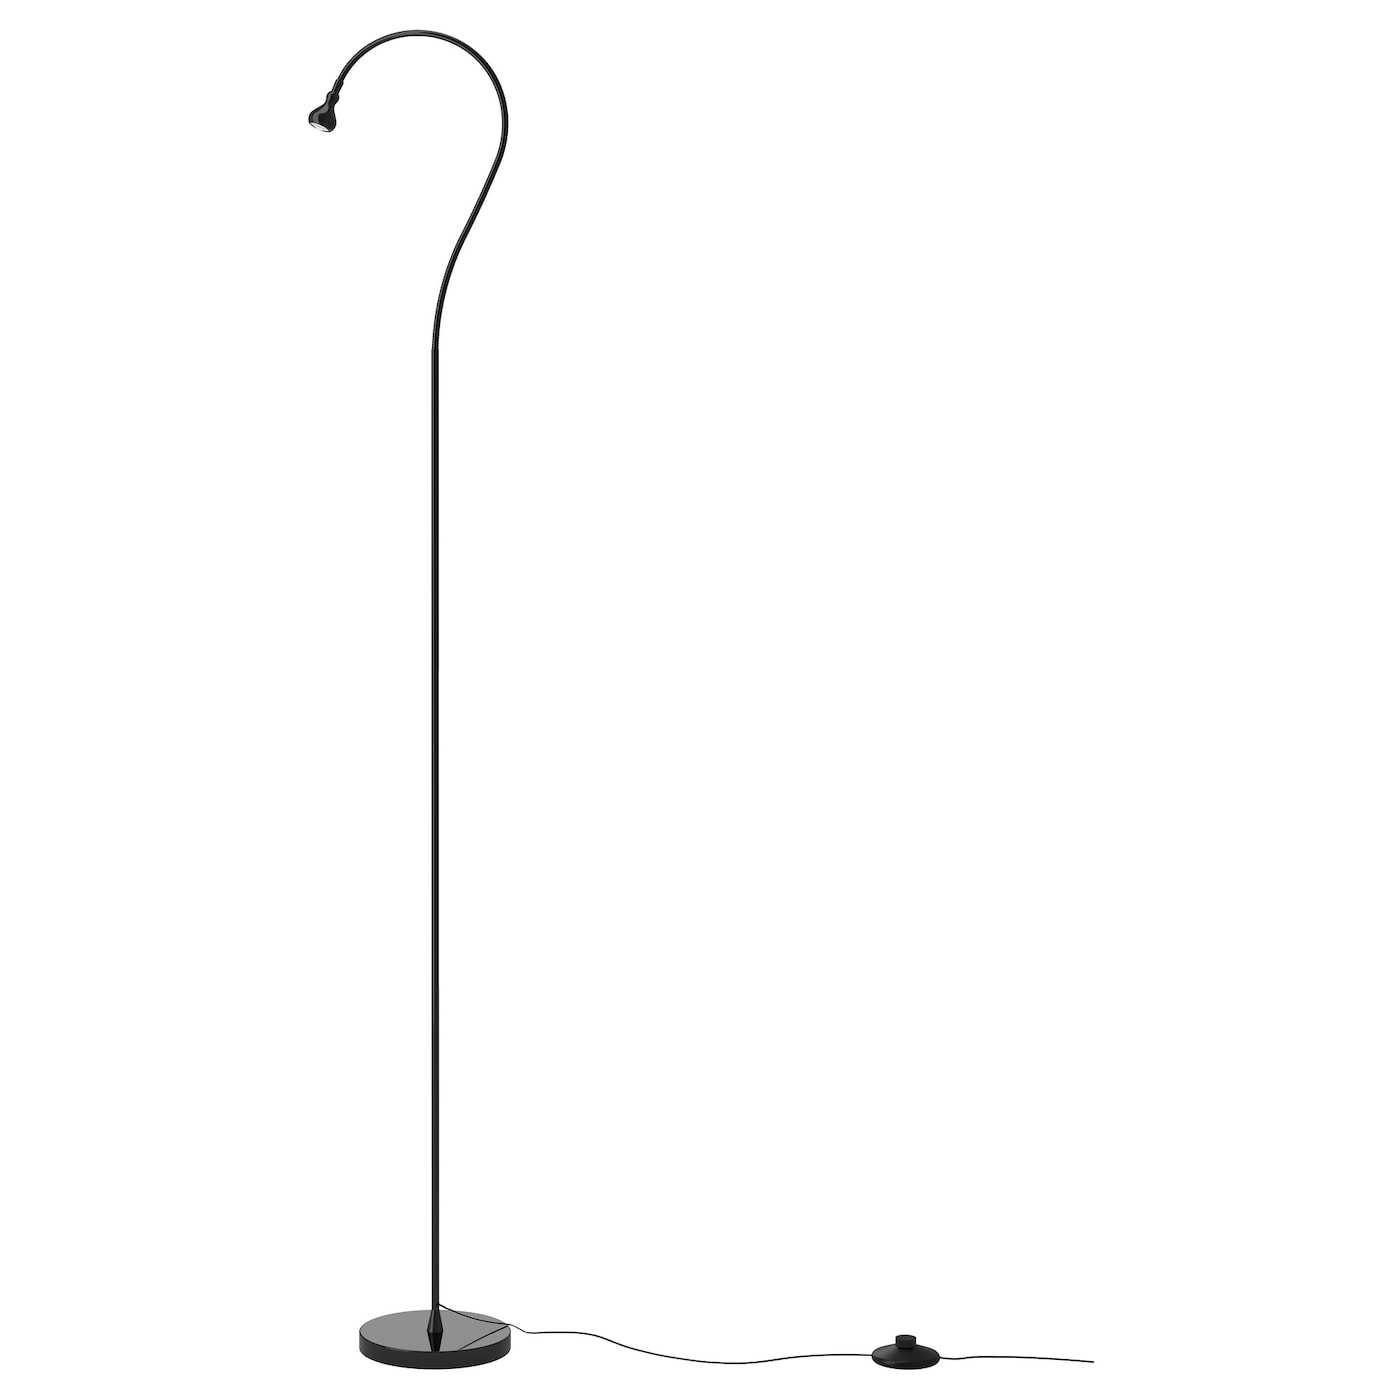 jansj led floor read lamp black ikea. Black Bedroom Furniture Sets. Home Design Ideas